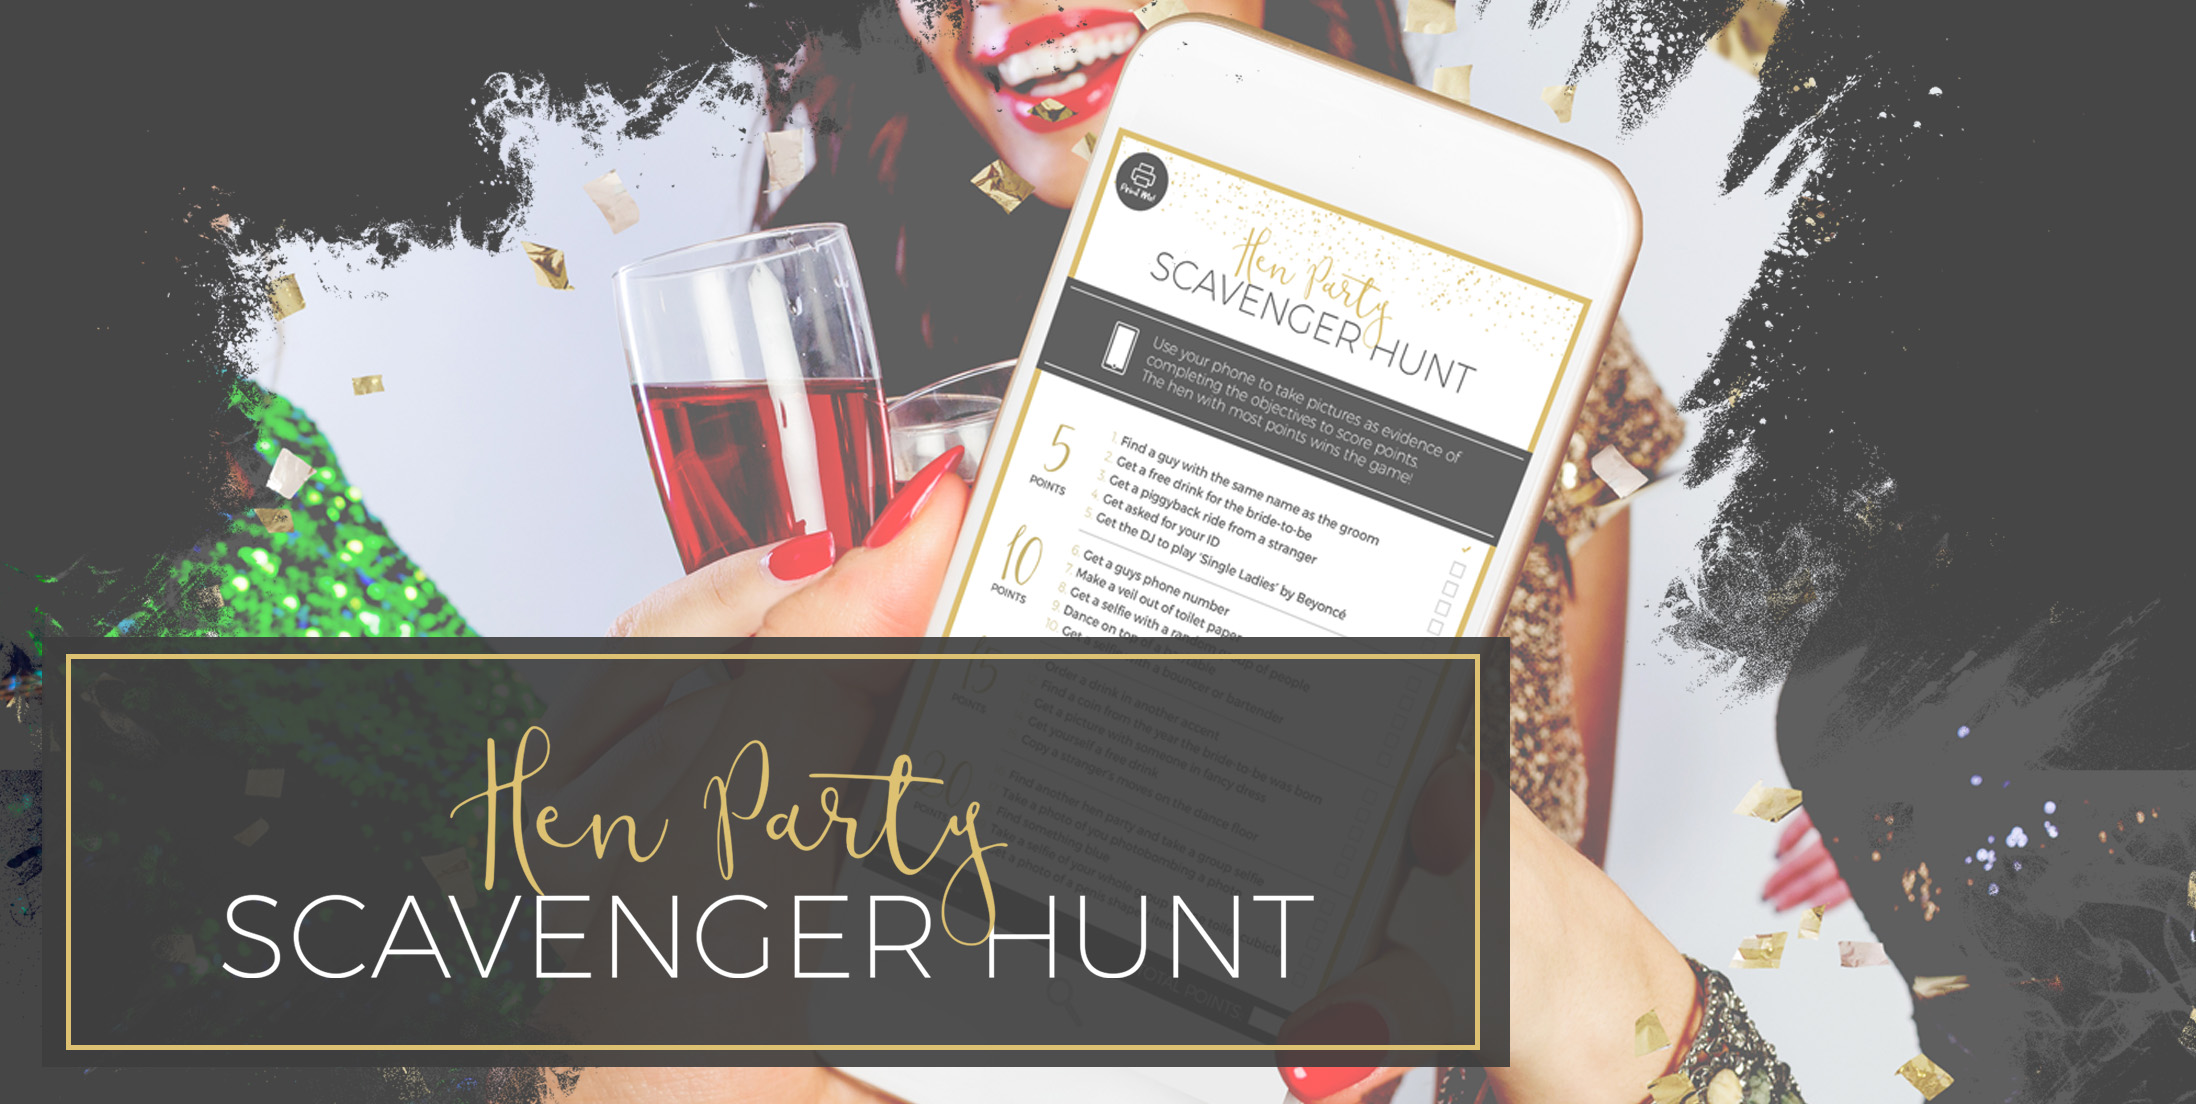 Hen Party Scavenger Hunt